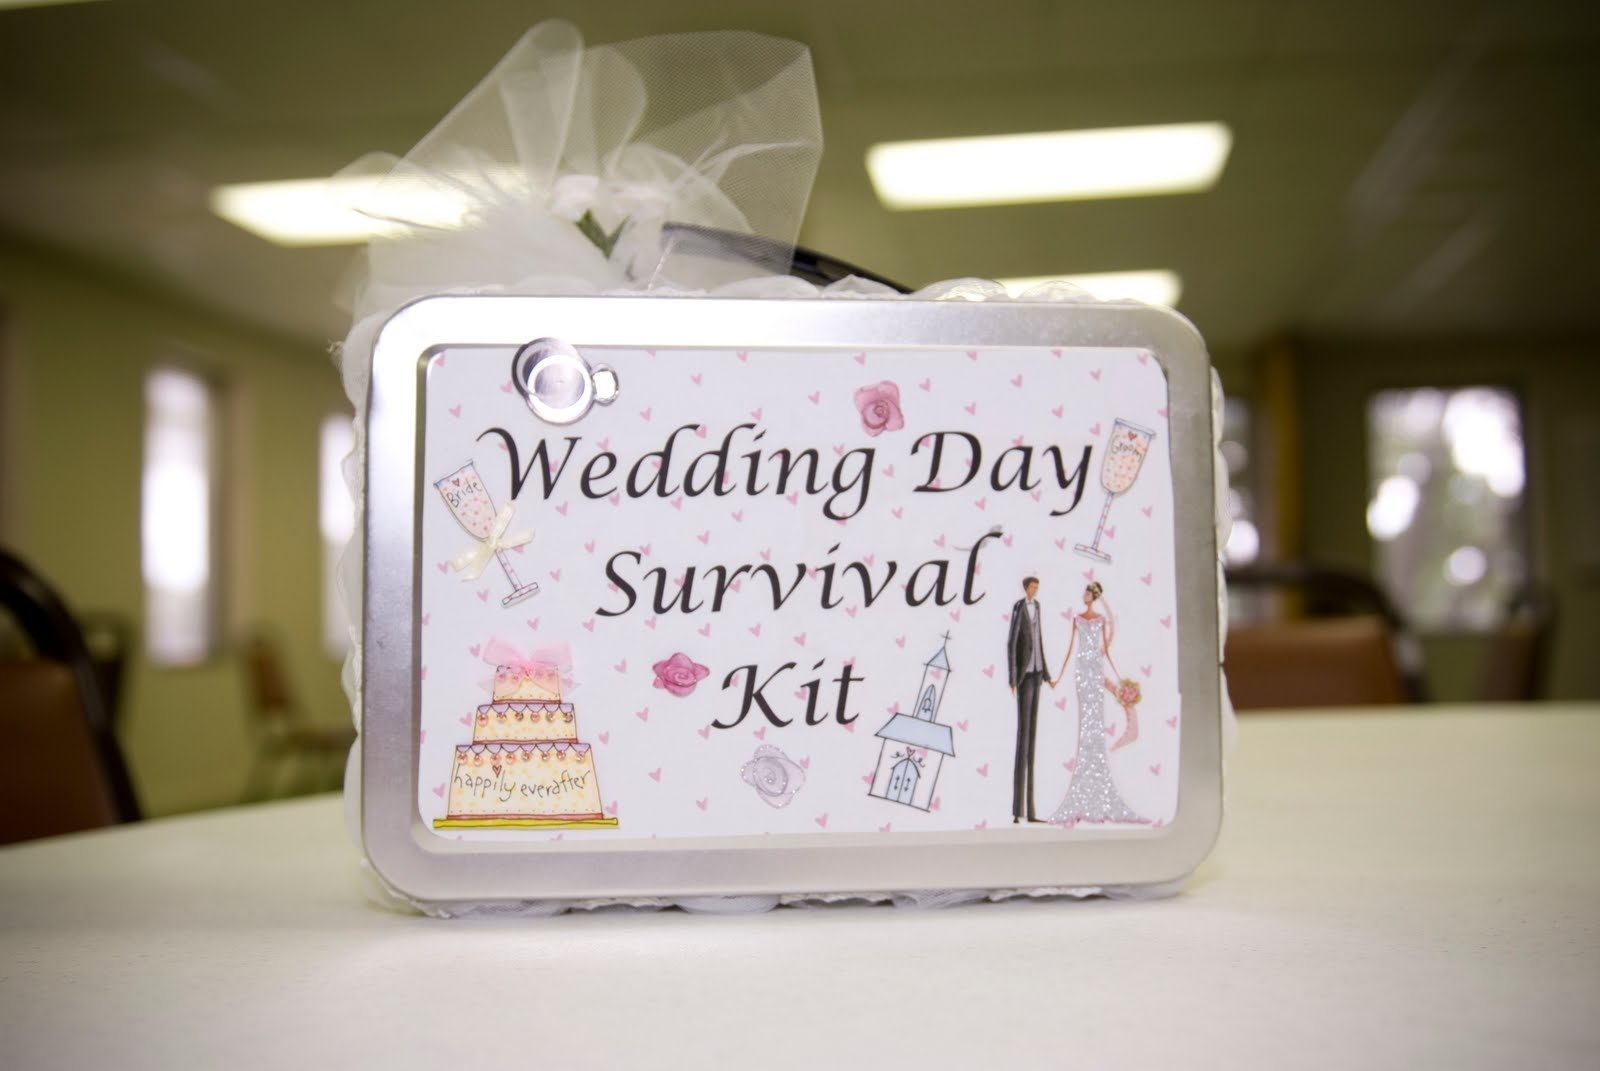 10 Nice Cute Wedding Shower Gift Ideas lovable bride to be ideas creative word as bridal shower gift ideas 16 2020